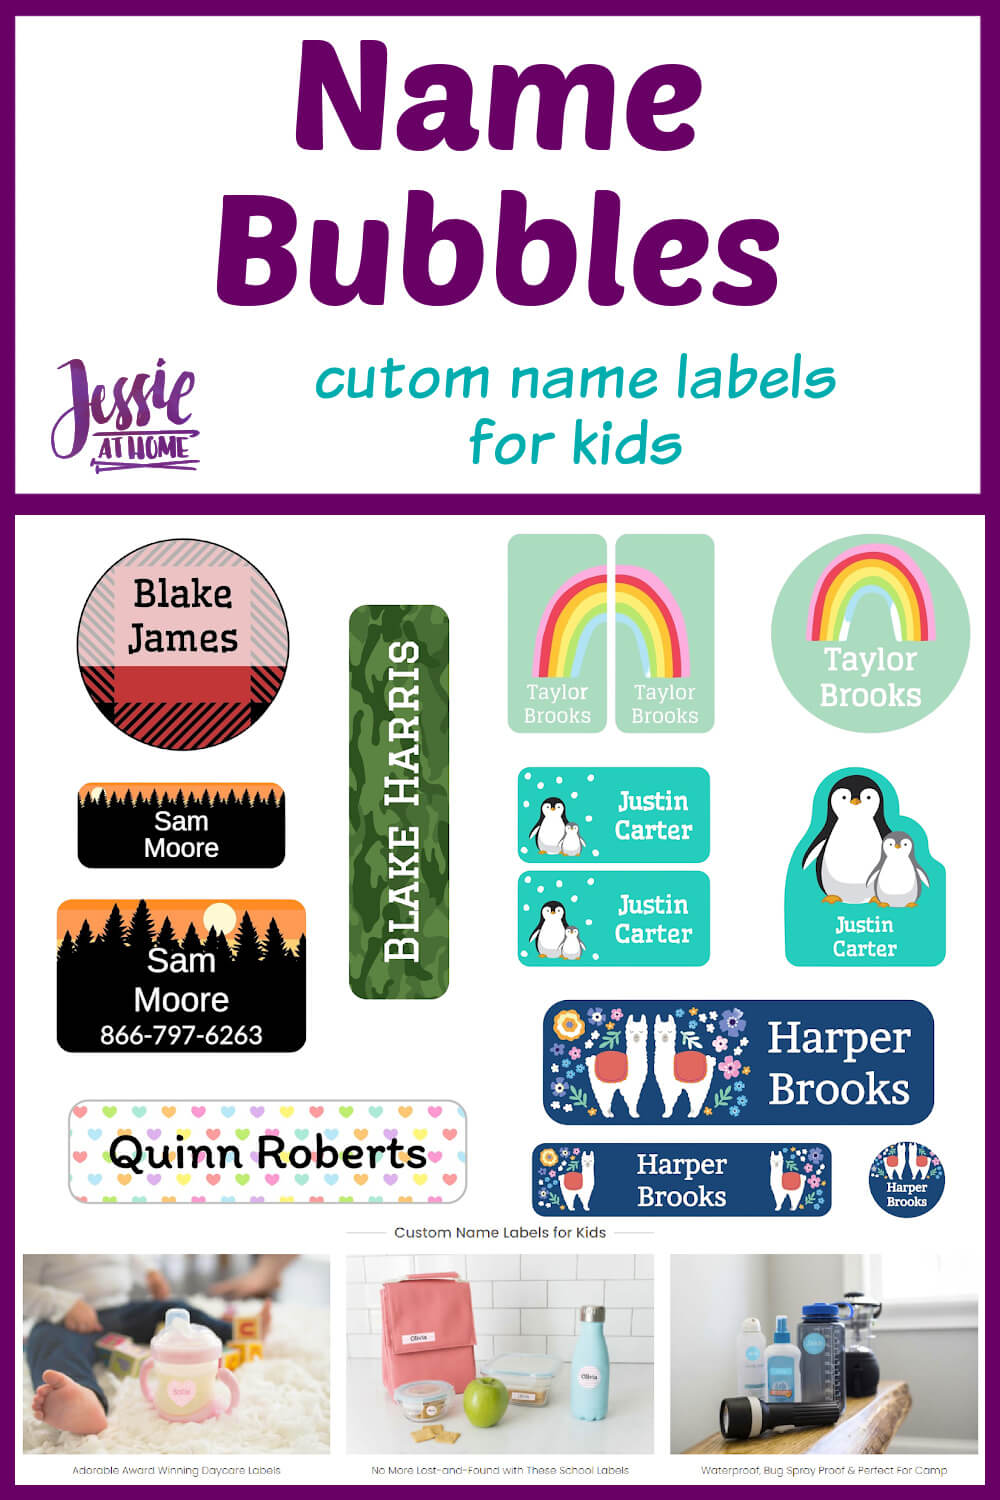 Name Bubbles custom name labels for kids - Jessie At Home - Pin 1